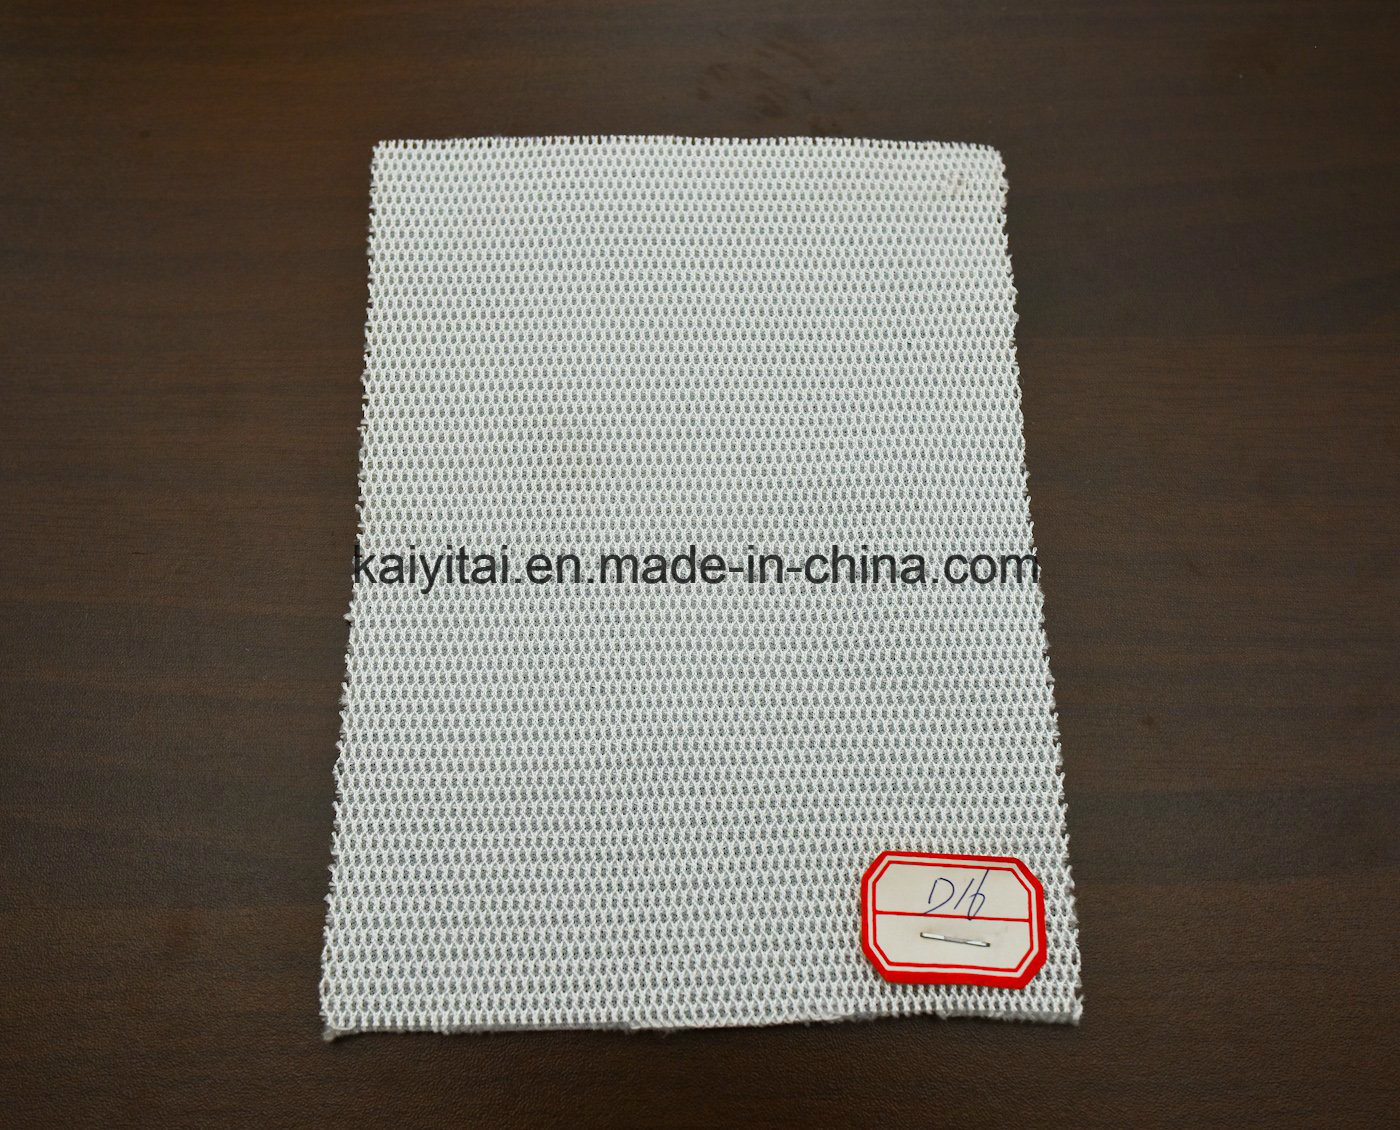 Many Different Kind of Air Mesh Fabric pictures & photos